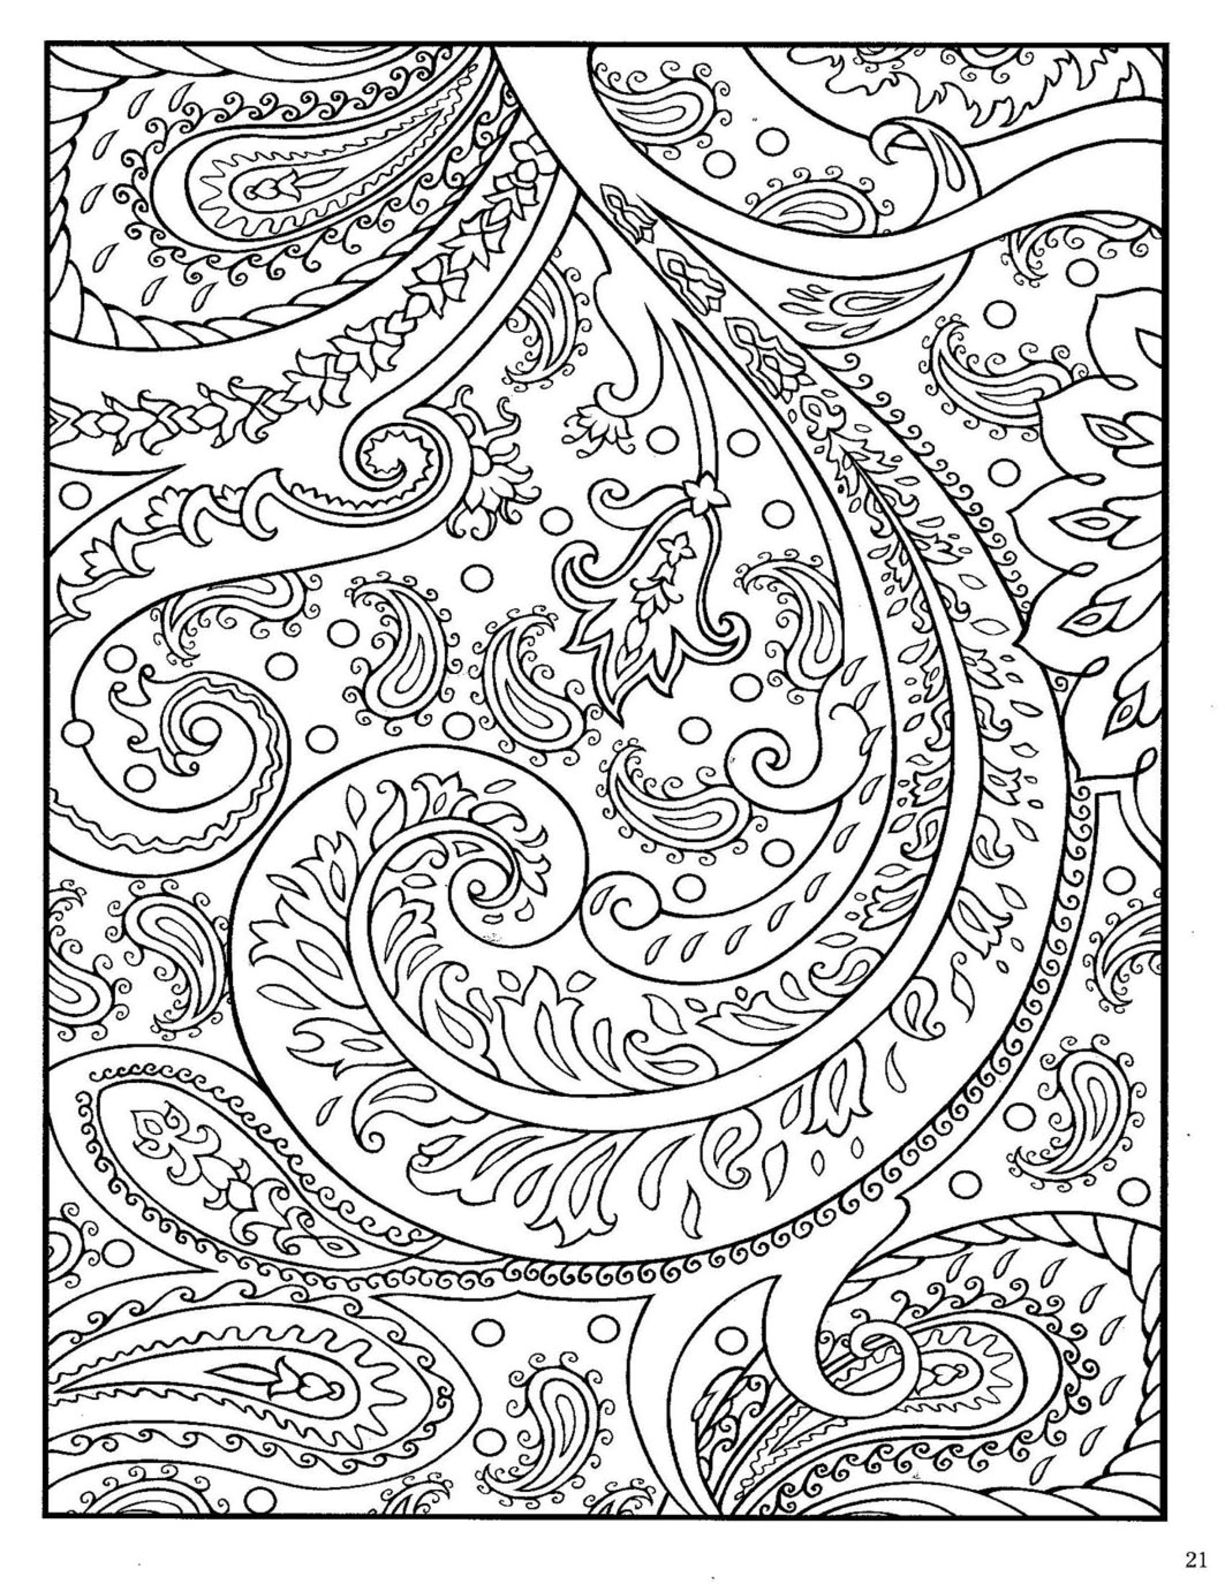 Dover Paisley Designs Coloring Book  Monochrome Motifs Patterns